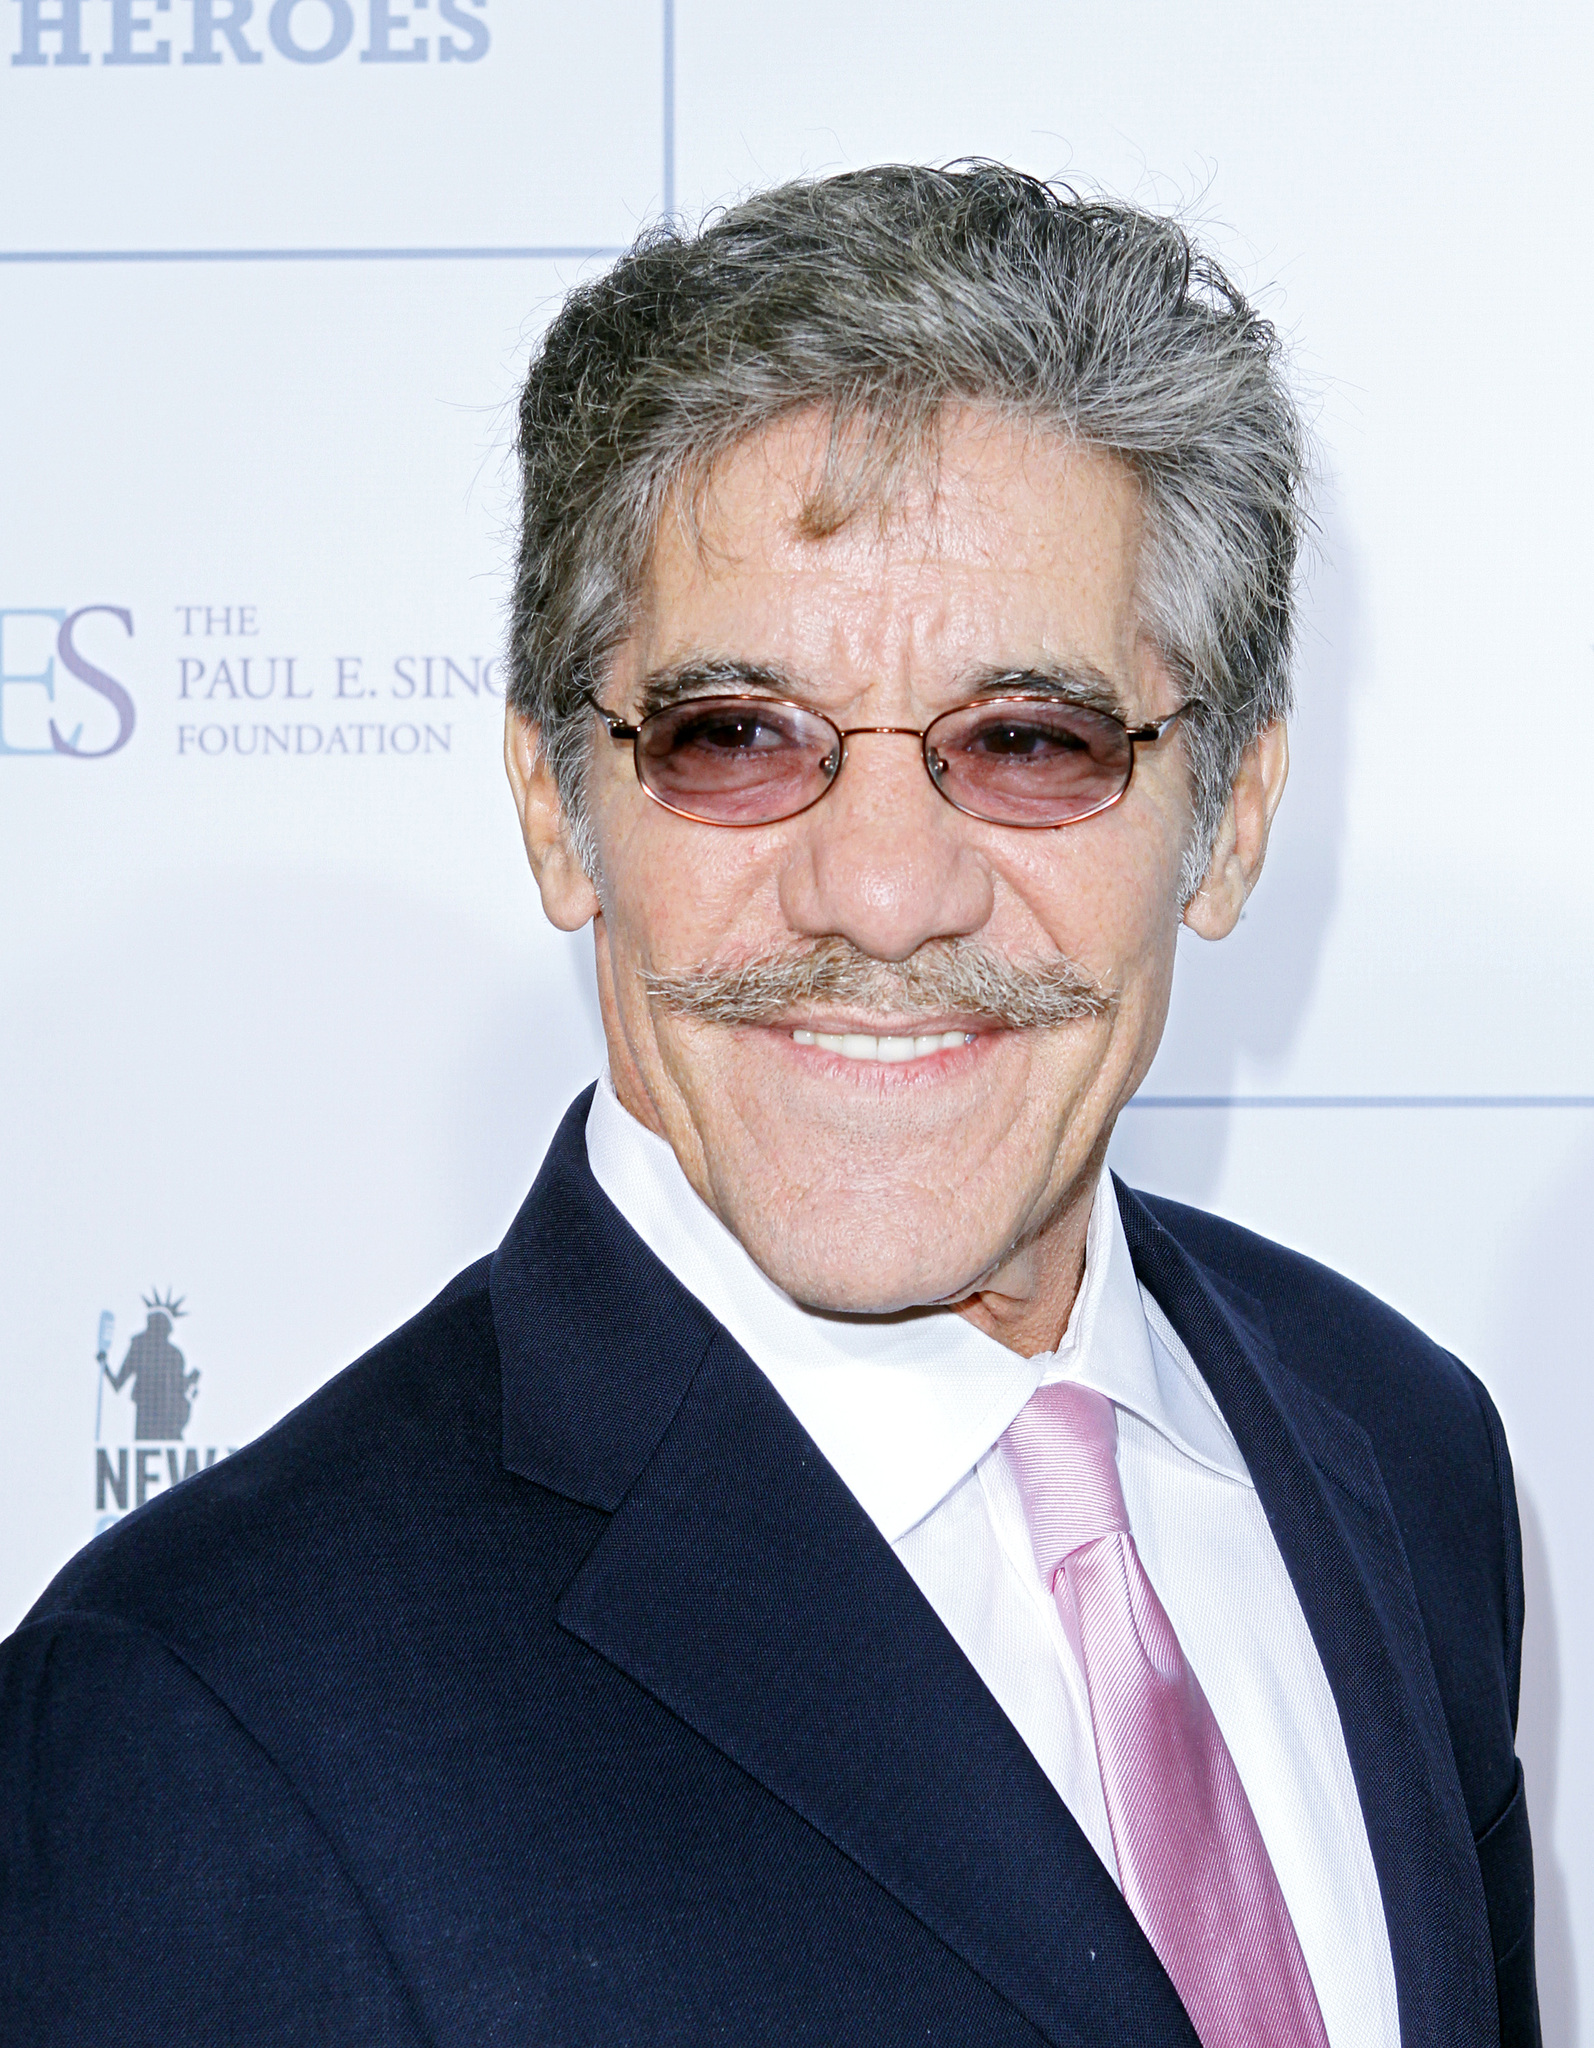 The 75-year old son of father (?) and mother(?) Geraldo Rivera in 2019 photo. Geraldo Rivera earned a  million dollar salary - leaving the net worth at  million in 2019